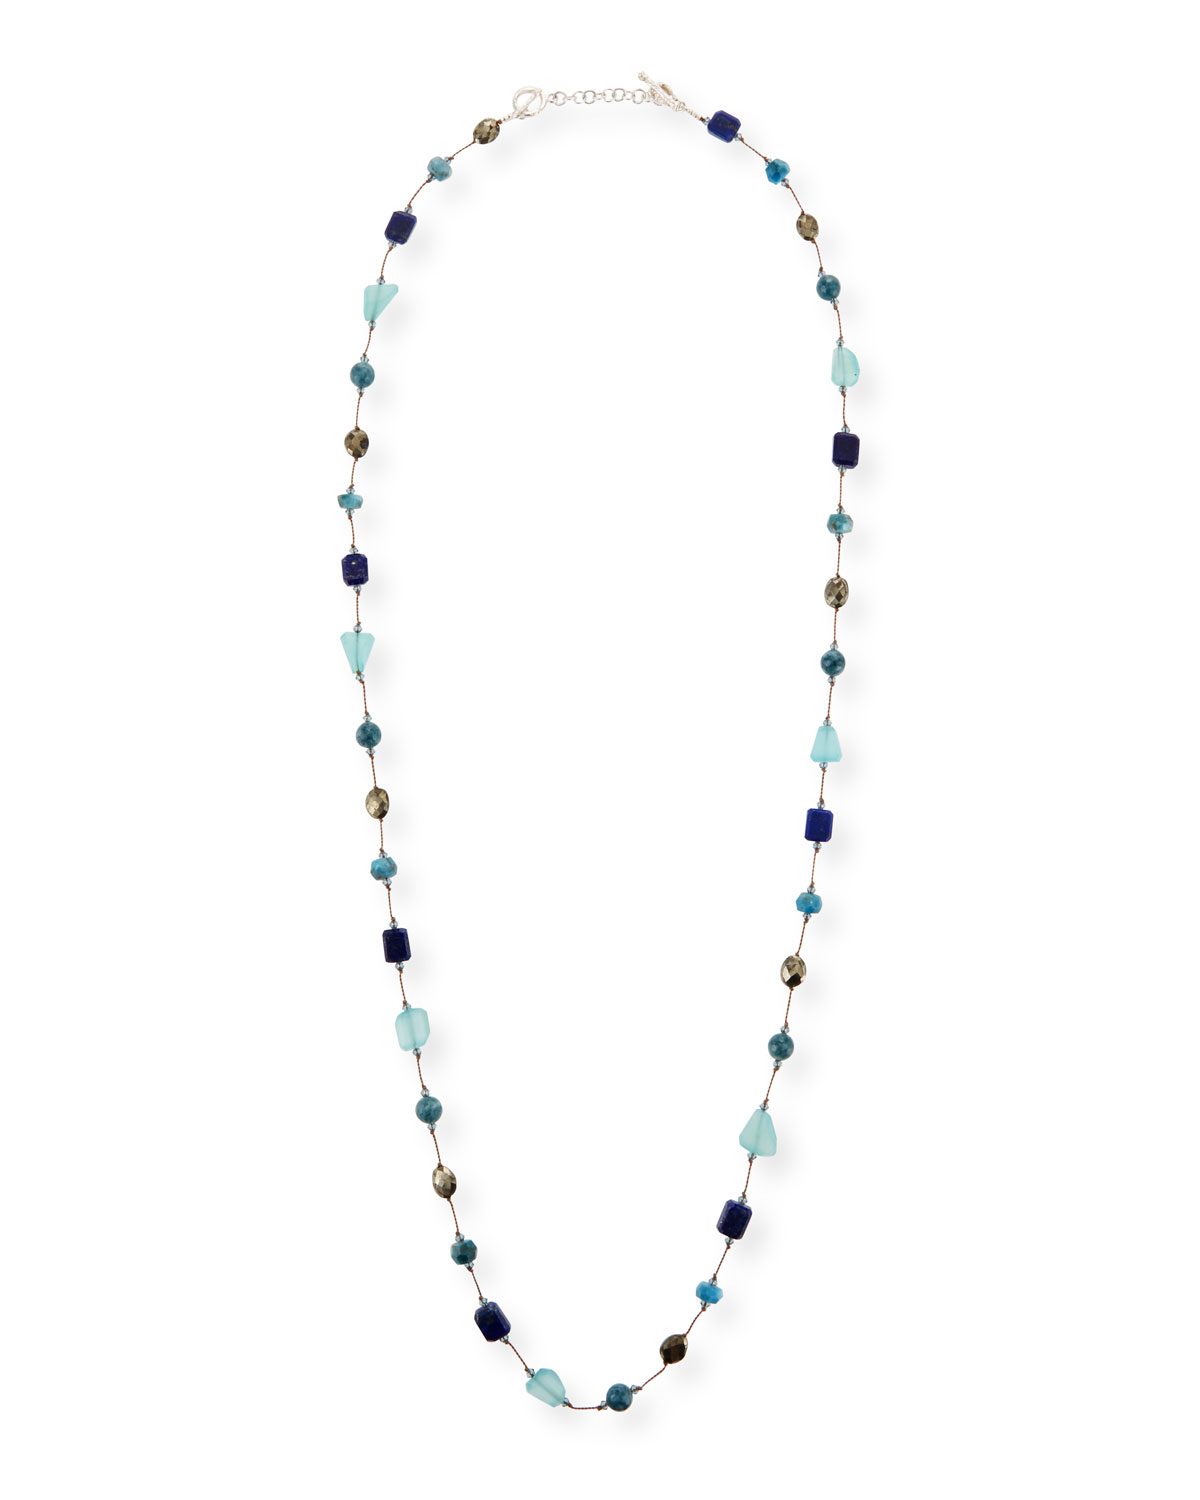 MARGO MORRISON Mixed Blue Stone Necklace